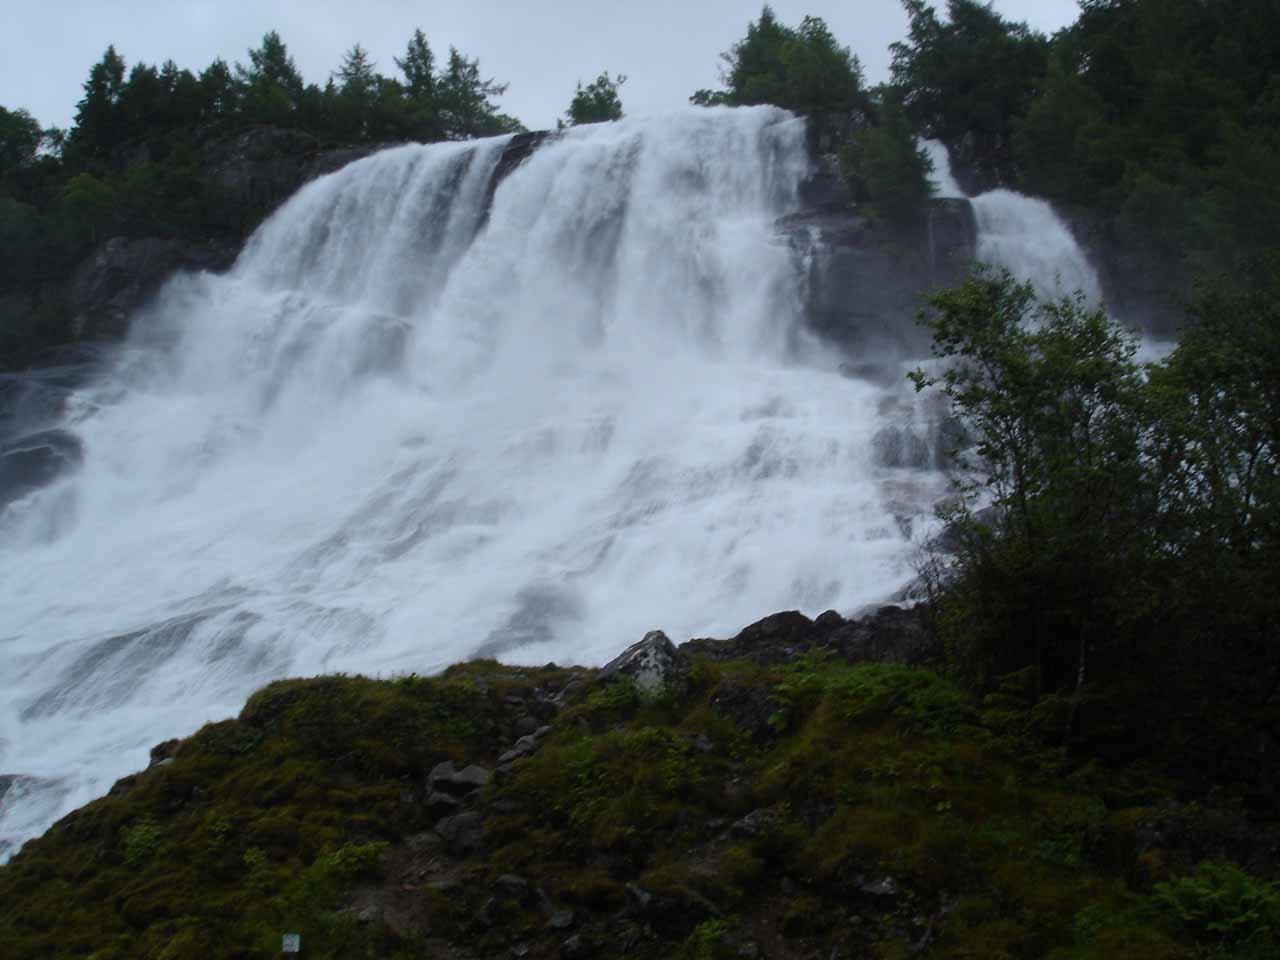 This might have been a less misty view of Furebergsfossen but then we saw less of the waterfall